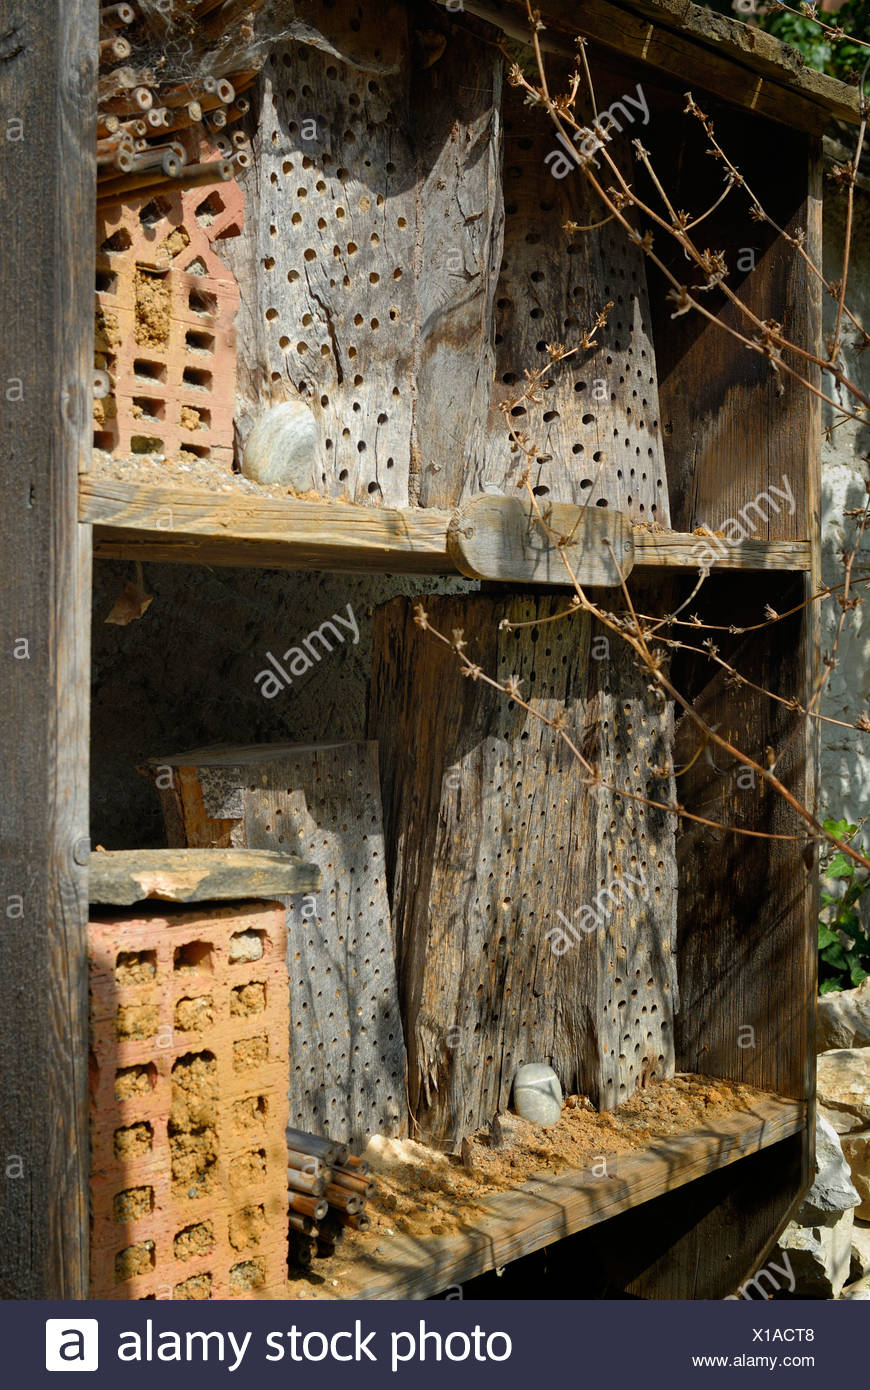 Schaffhausen - nesting place for wild bees and other insects - Switzerland, Europe. - Stock Image